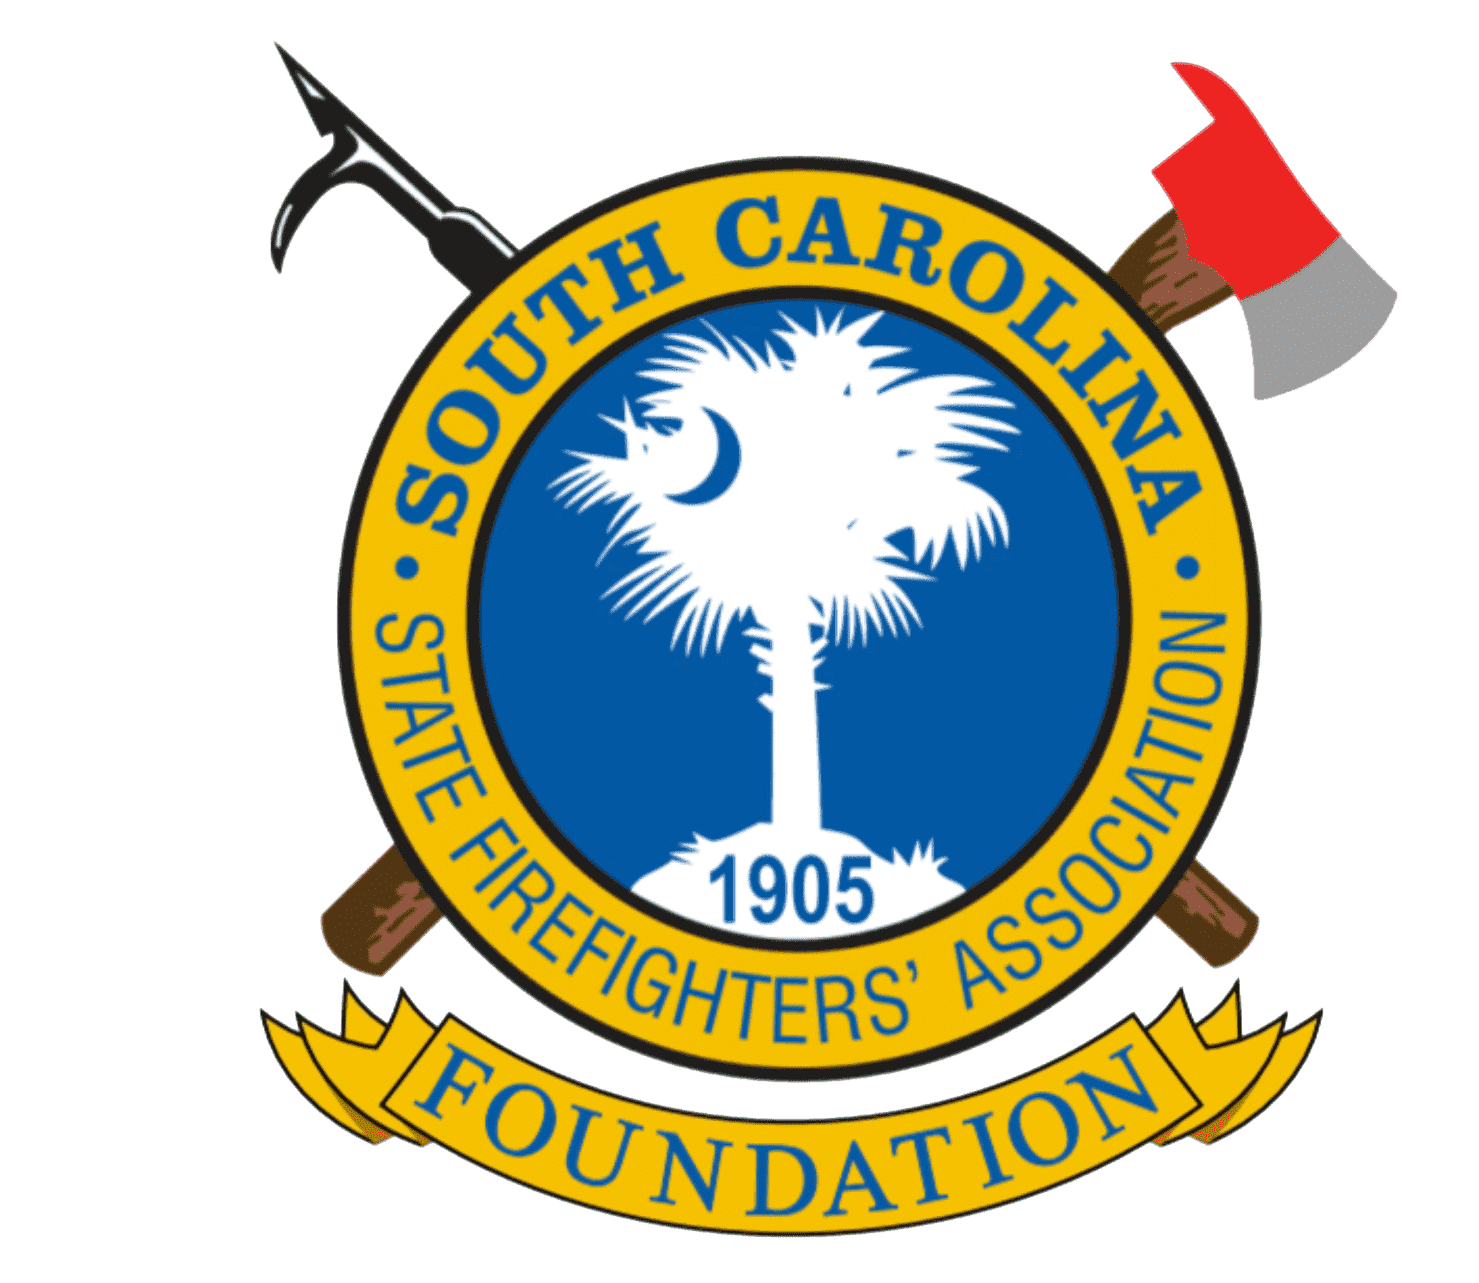 South Carolina State Firefighters Association Foundation